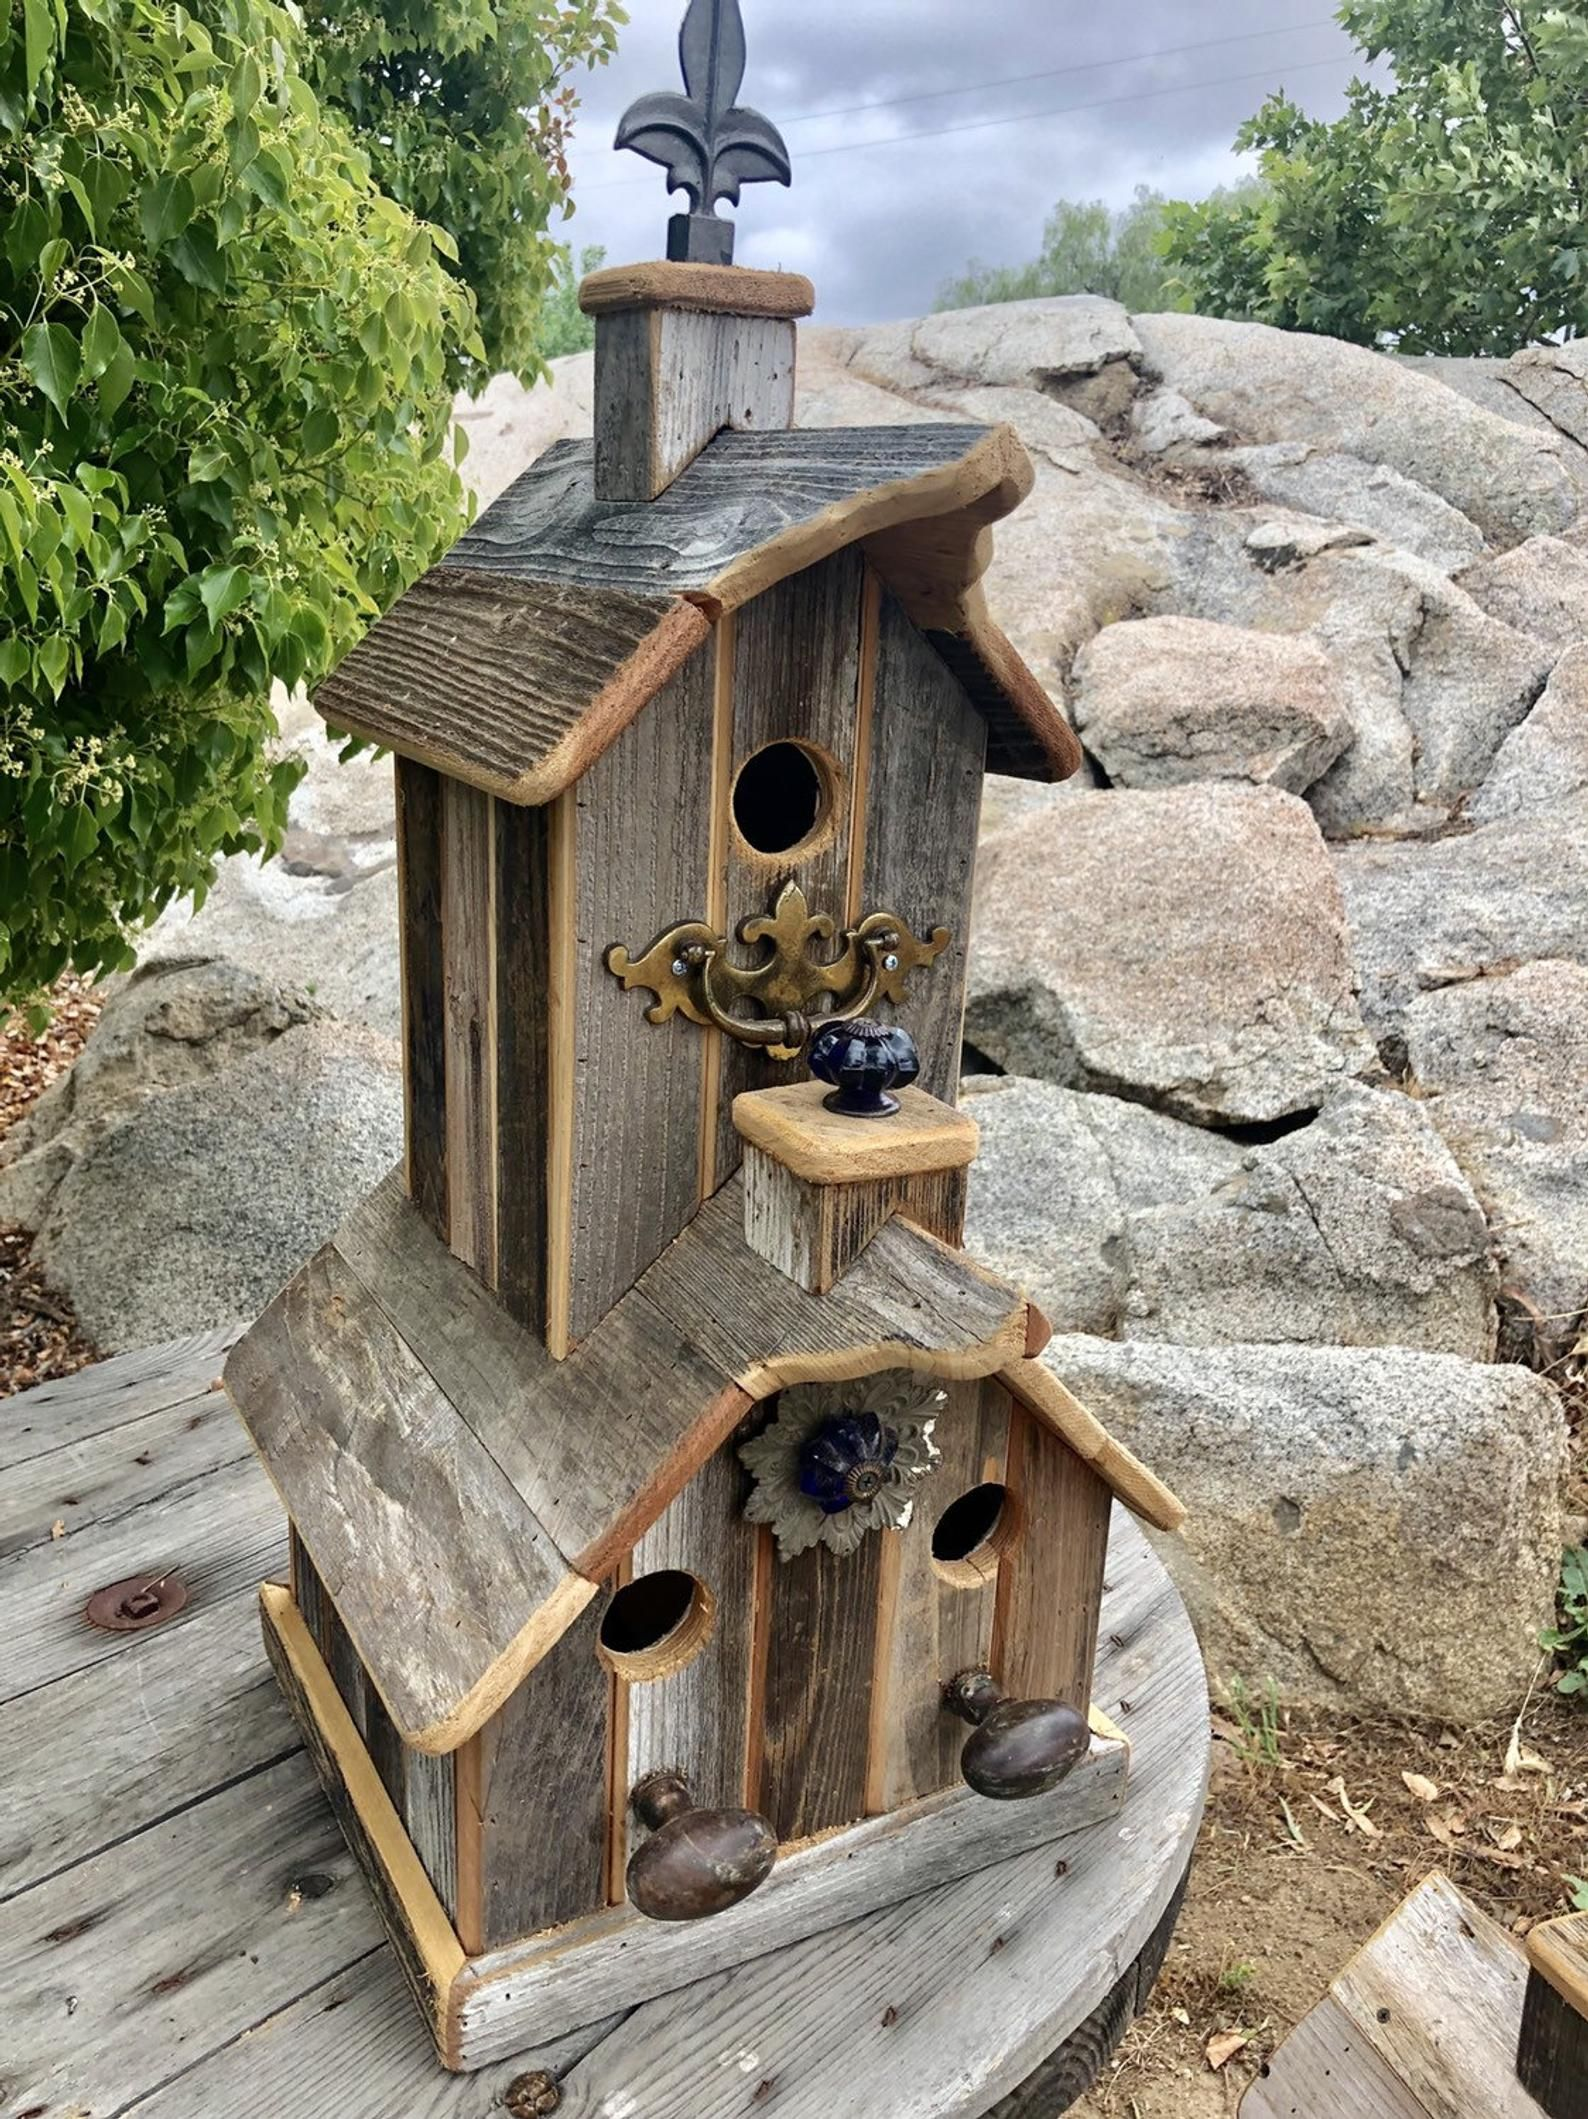 Rustic Recycled Rwo Story Birdhouse With Really Cool Wood Etsy In 2020 Unique Bird Houses Cool Bird Houses Decorative Bird Houses